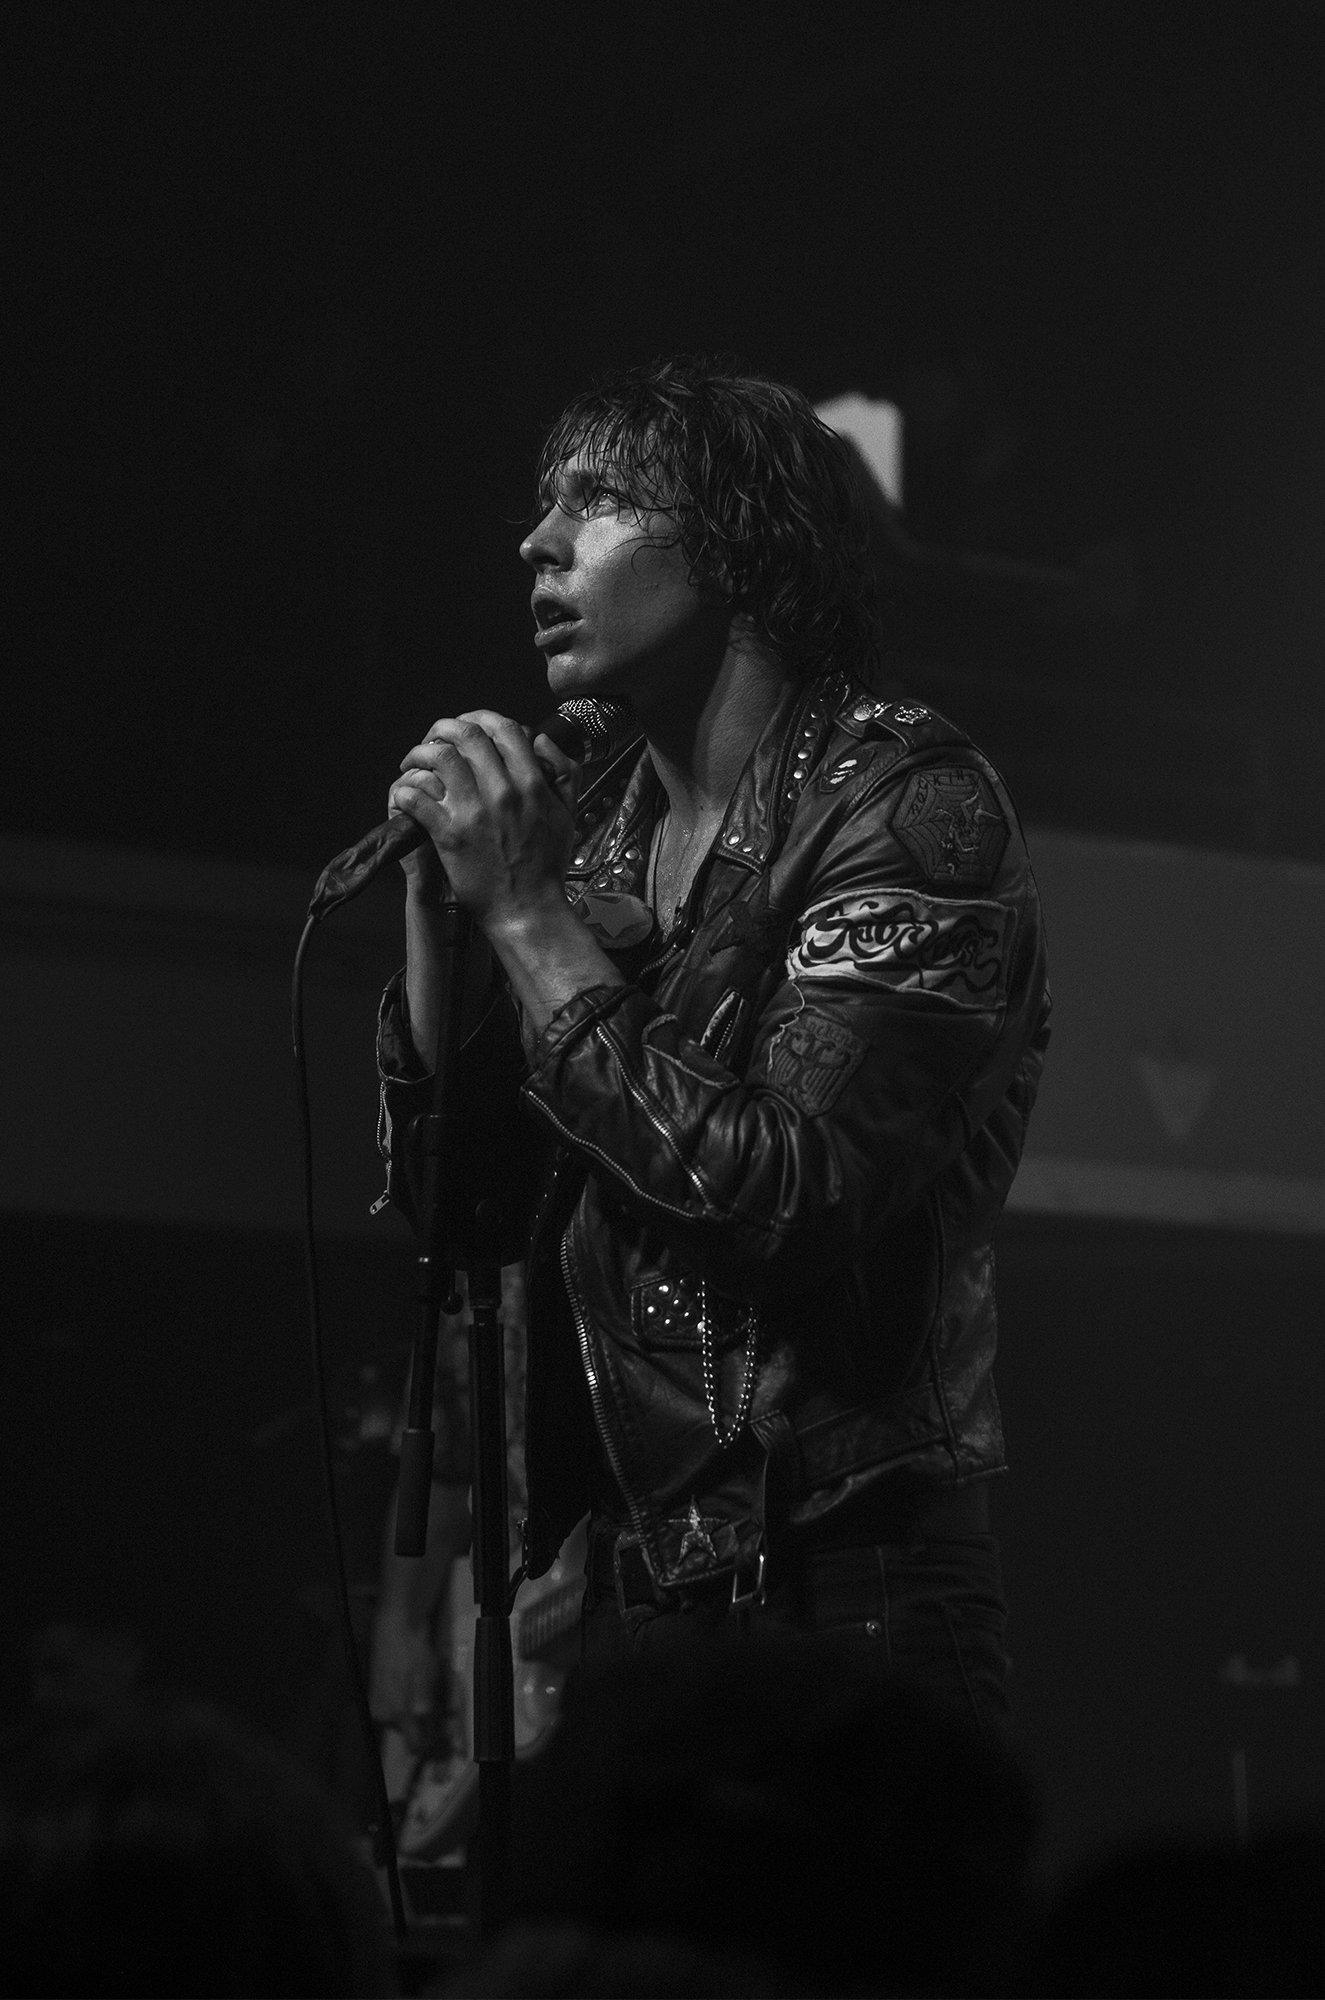 Barns Courtney (by Morgan Winston)